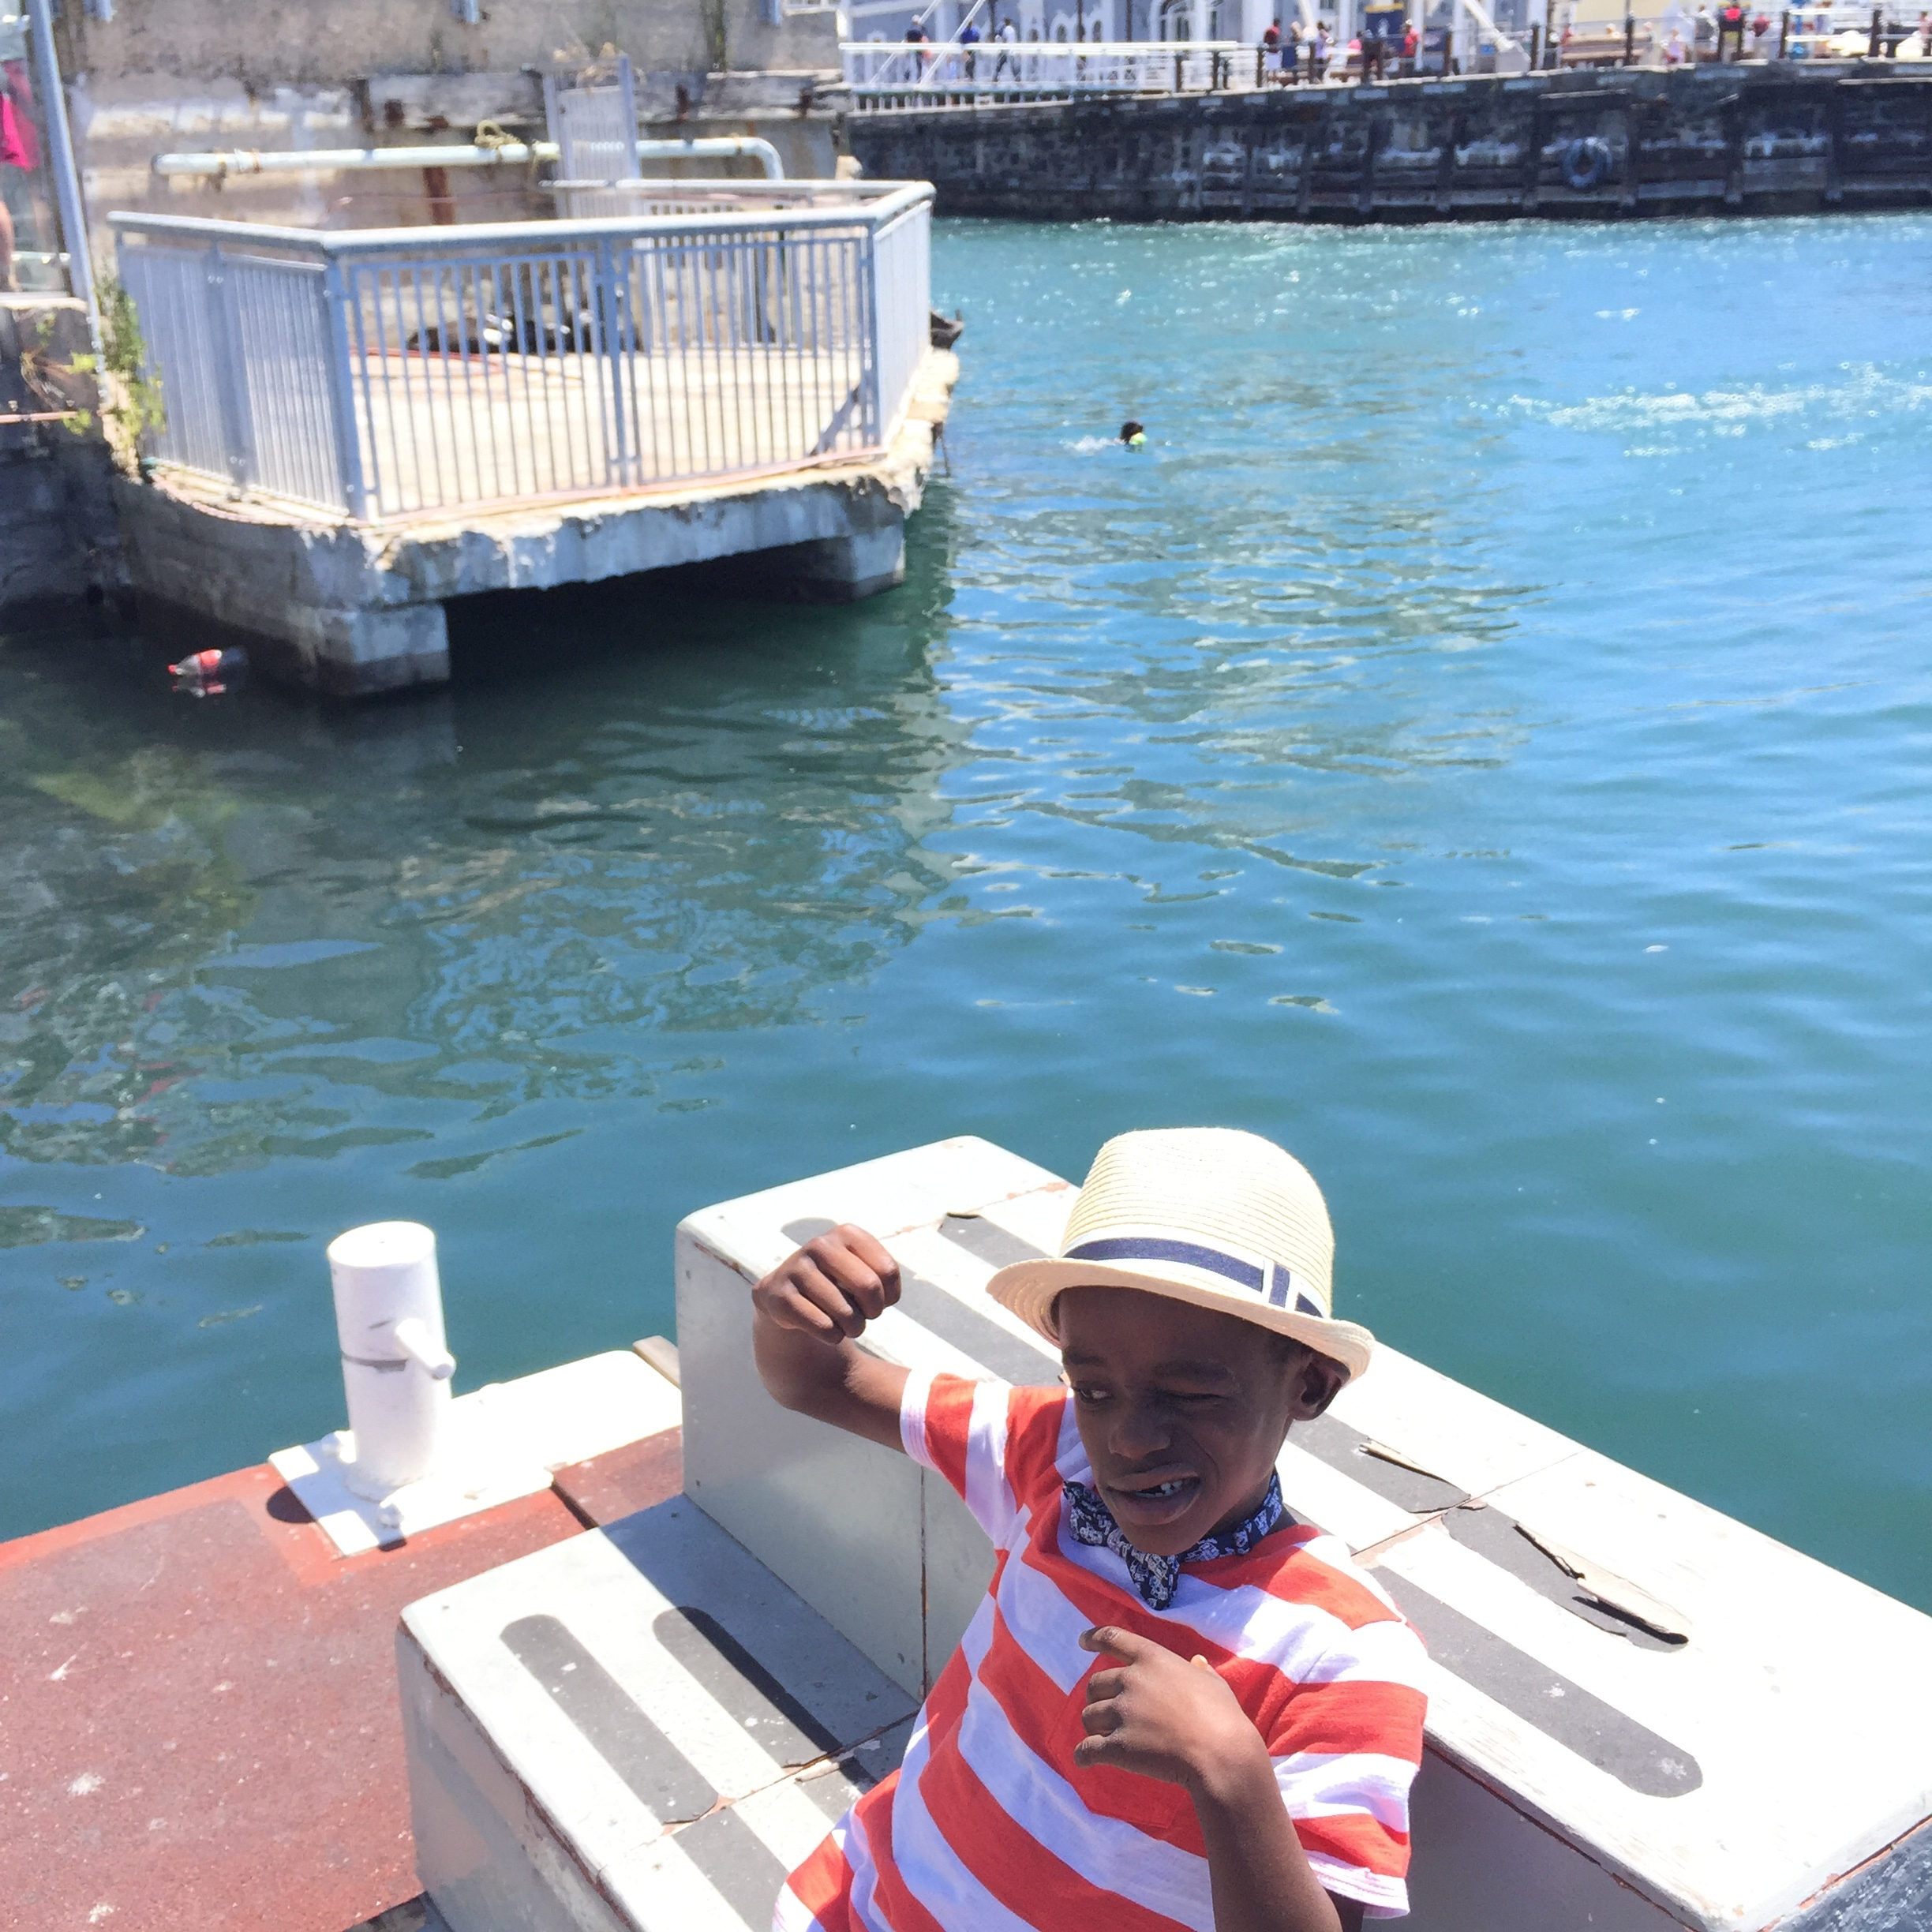 He wanted his picture with the seals, then proceeded to pretend he was fighting them.